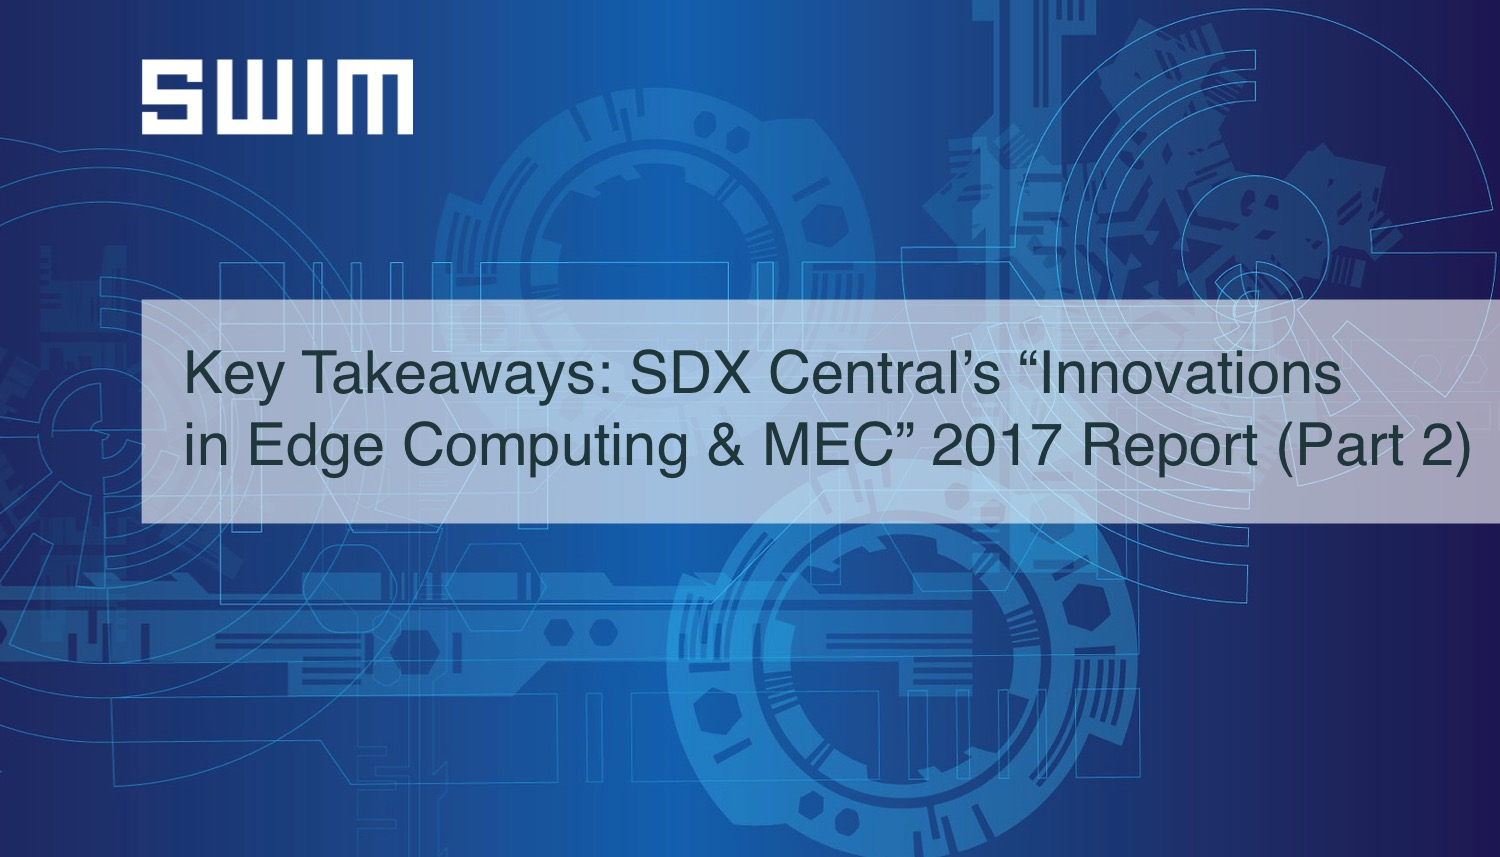 "Key Takeaways From SDX Central's 2017 ""Innovations in Edge Computing and MEC"" Report (Part 2) 